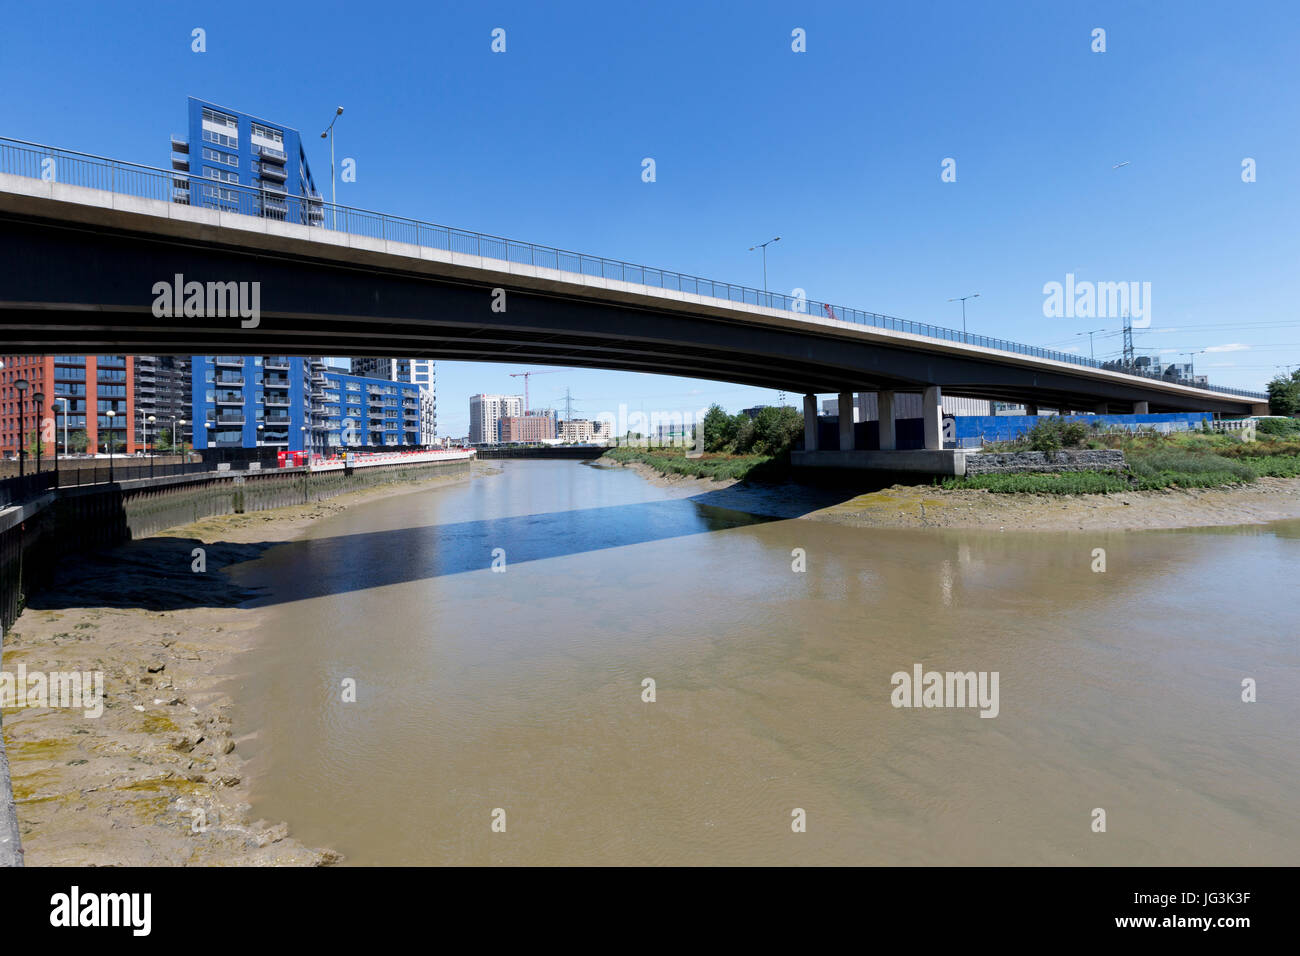 The Lower Lea Crossing Bridge (A1020), Canning Town, London, UK - Stock Image